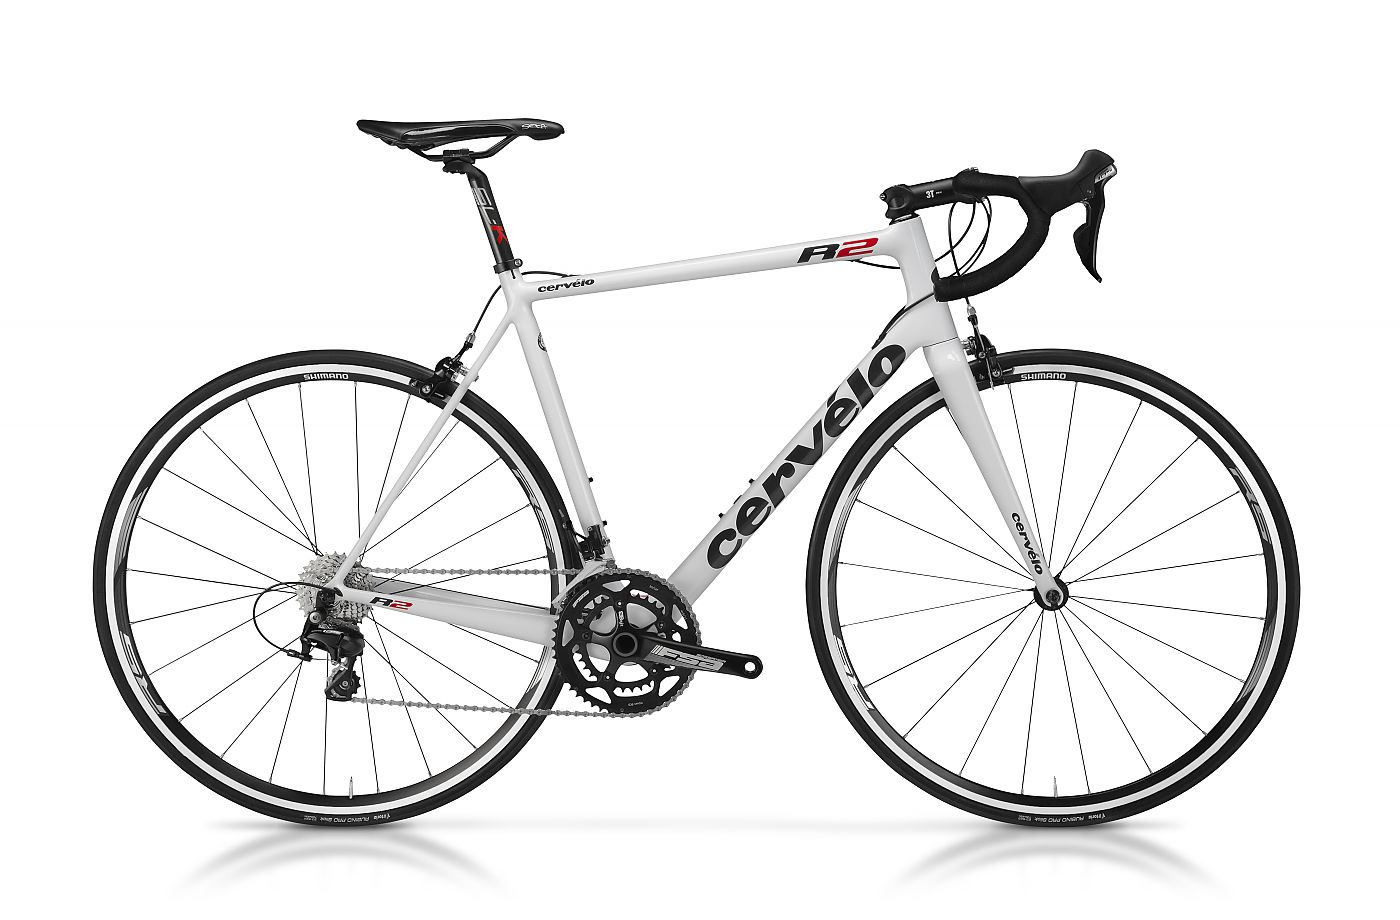 Cervélo hits $2,500 price point with new R2 bike model